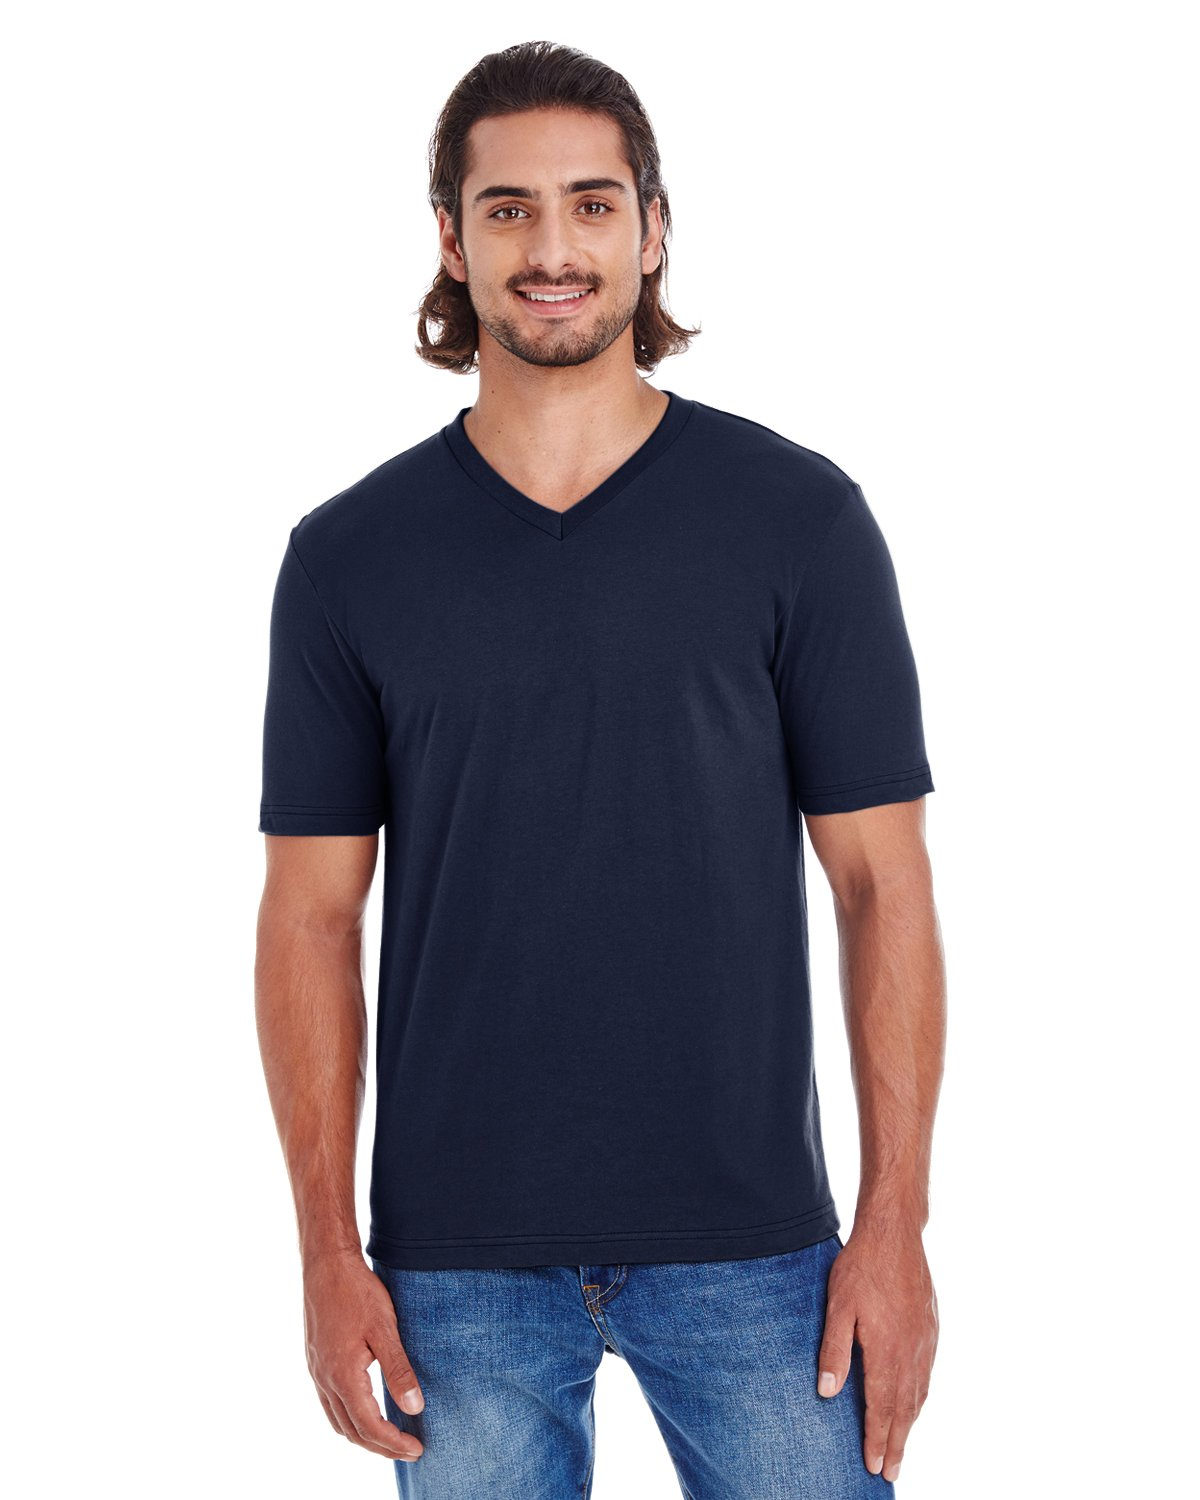 American Apparel 24321W Unisex Fine Jersey Short Sleeve Classic V-Neck Navy S by American Apparel (Image #1)